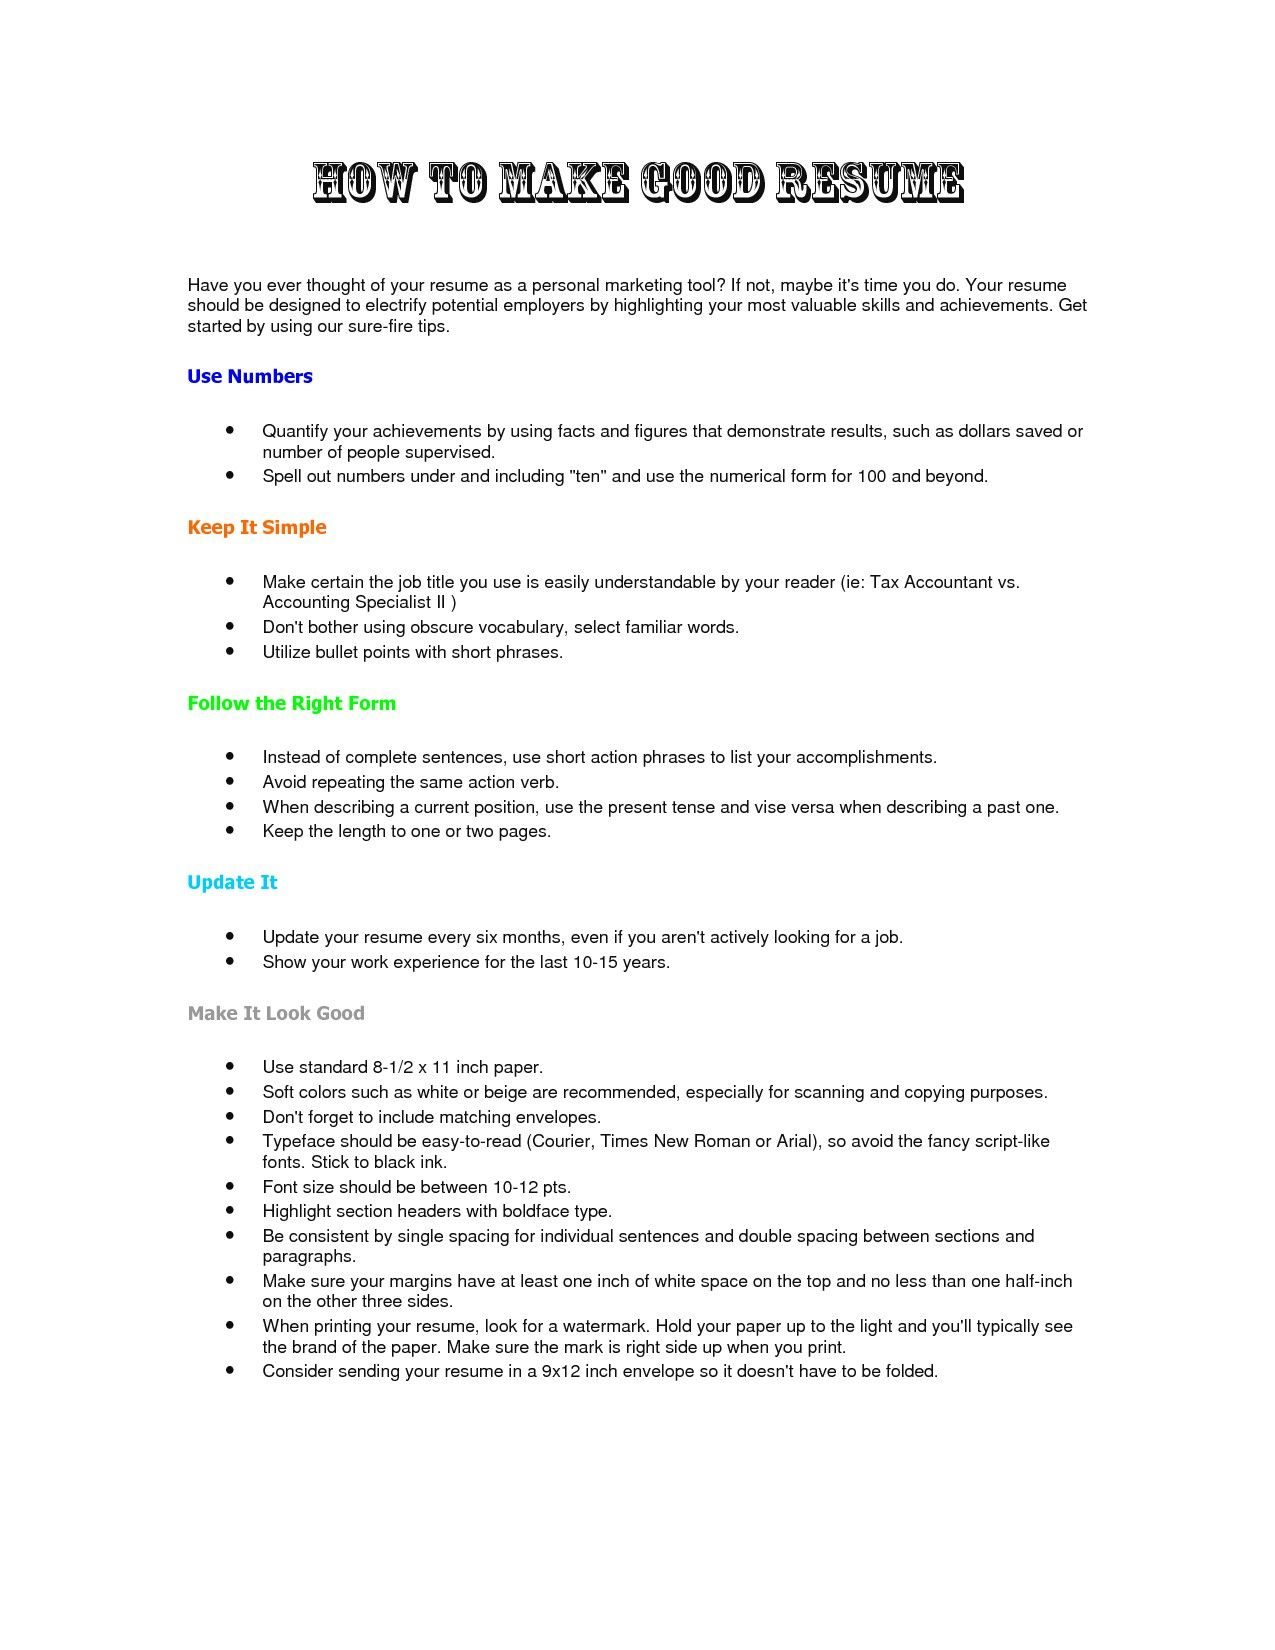 20 Best What Makes A Good Resume (With images) Resume